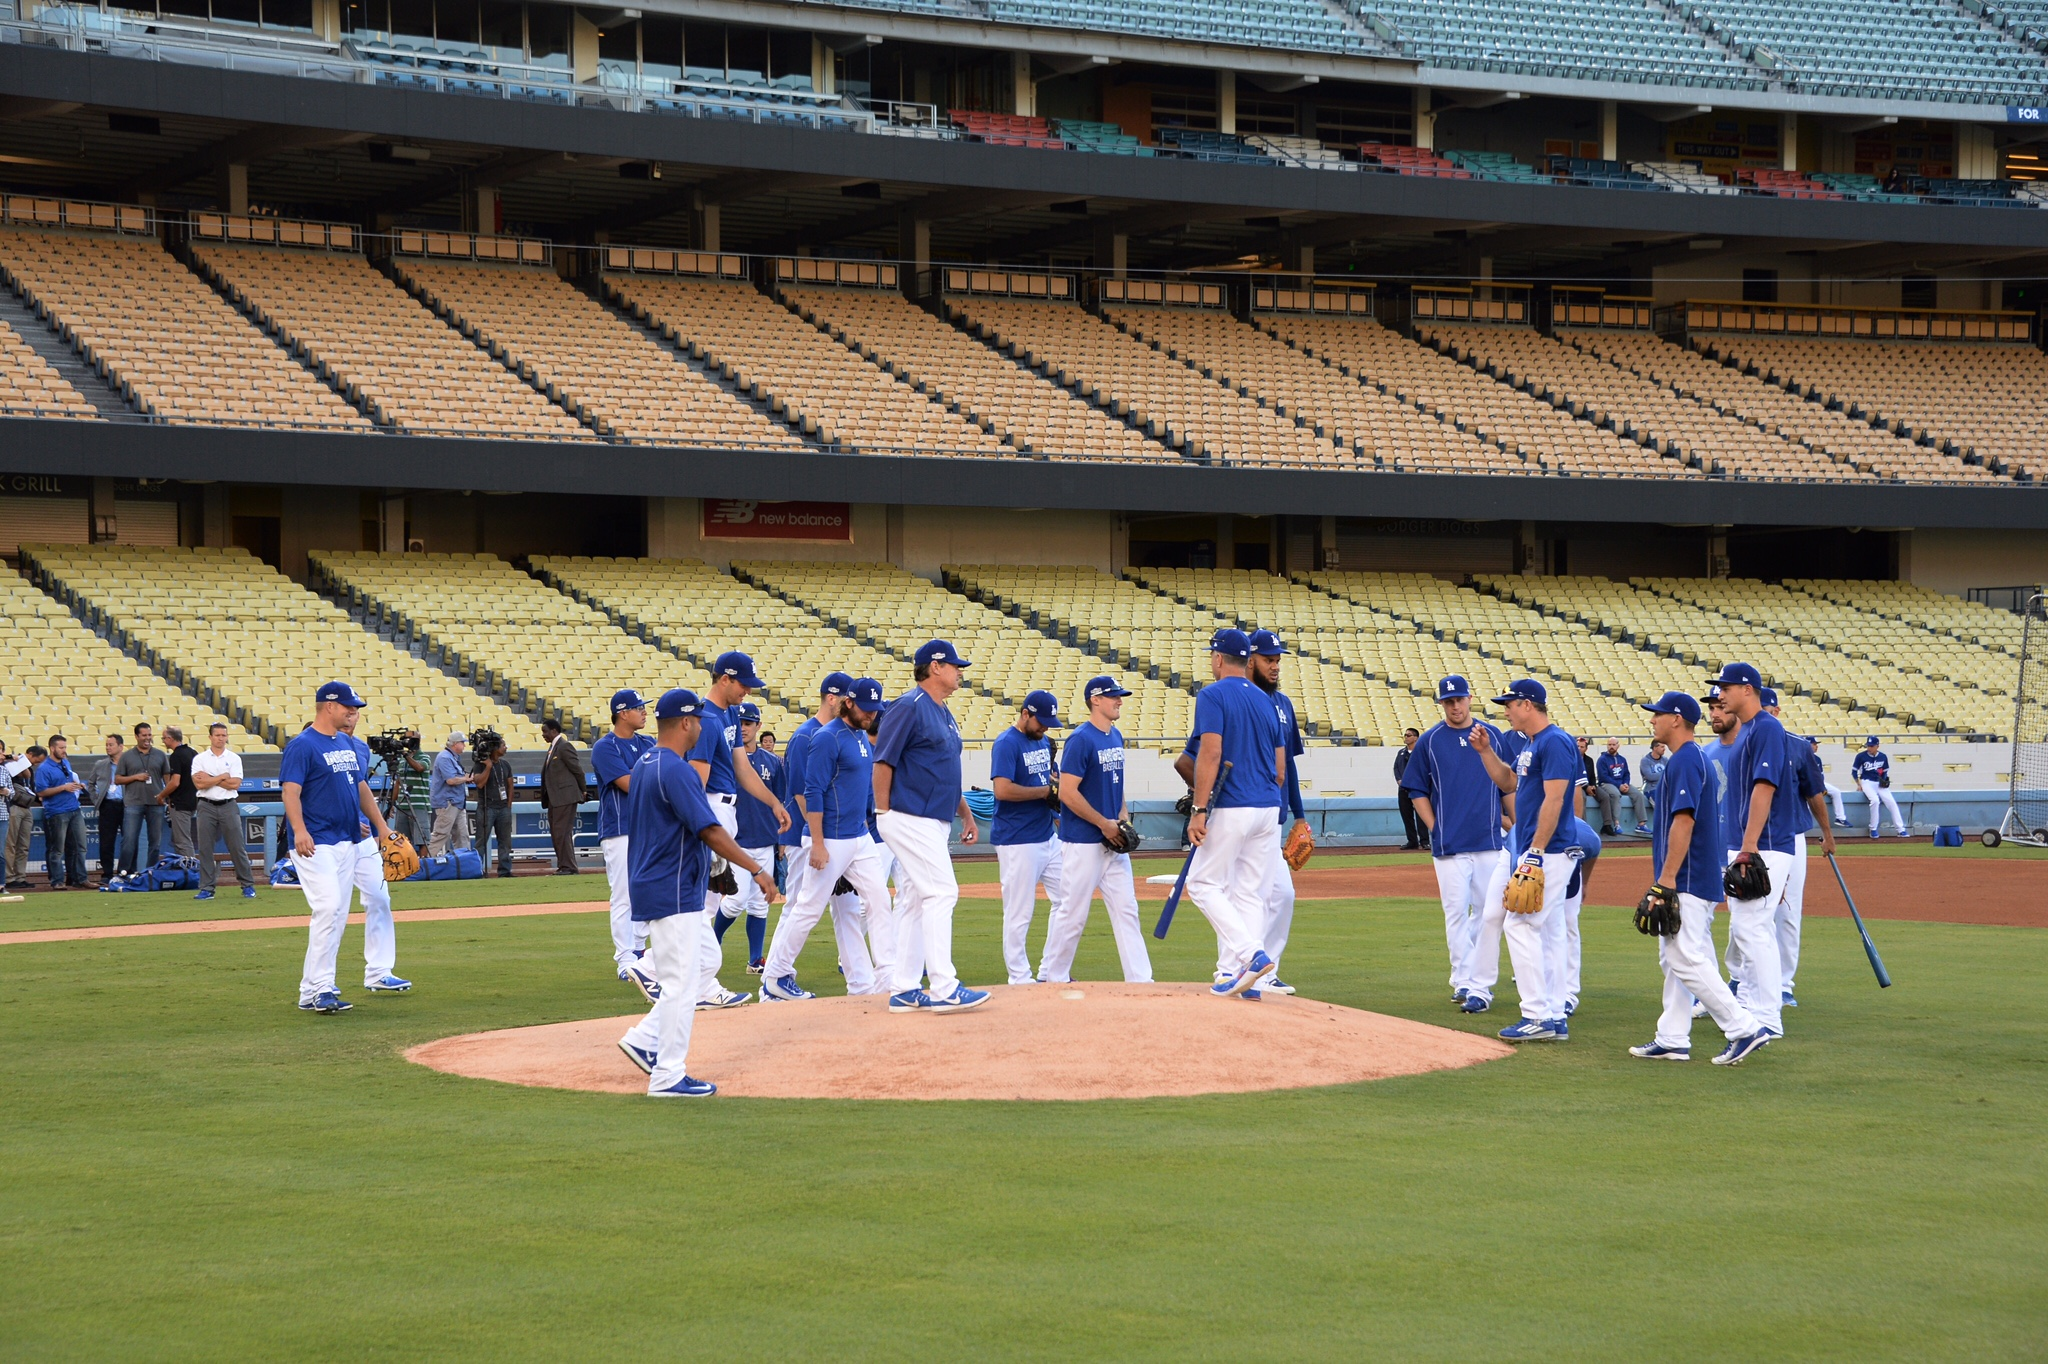 At dusk, the Dodgers were in a workout ahead of their Wednesday flight to Washington D.C. (Jon SooHoo/Los Angeles Dodgers)